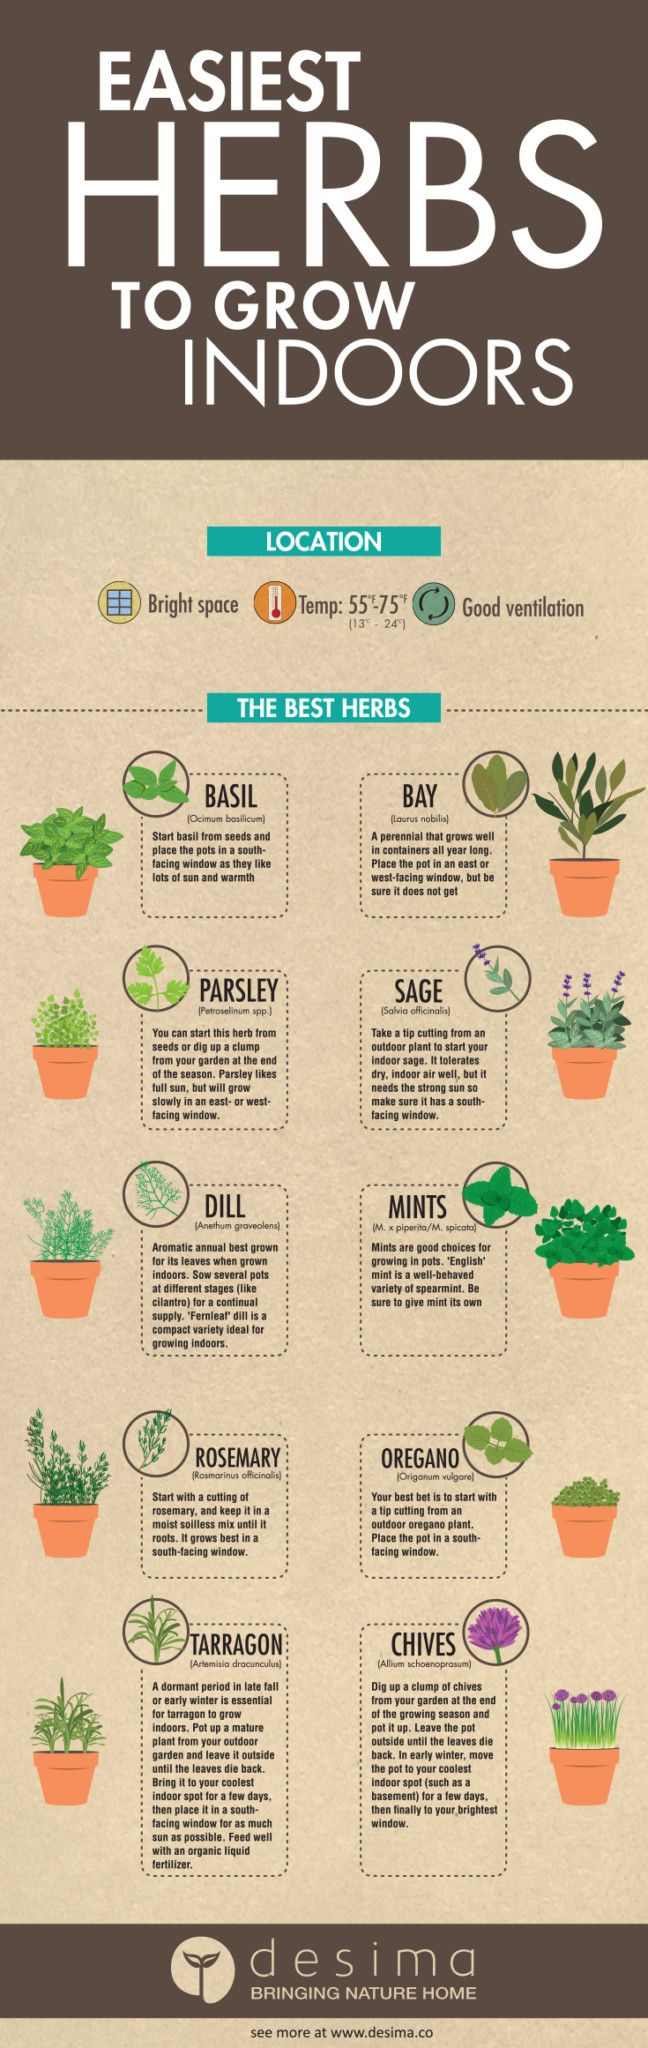 Indoor Herb Gardens and Container Herb Gardens